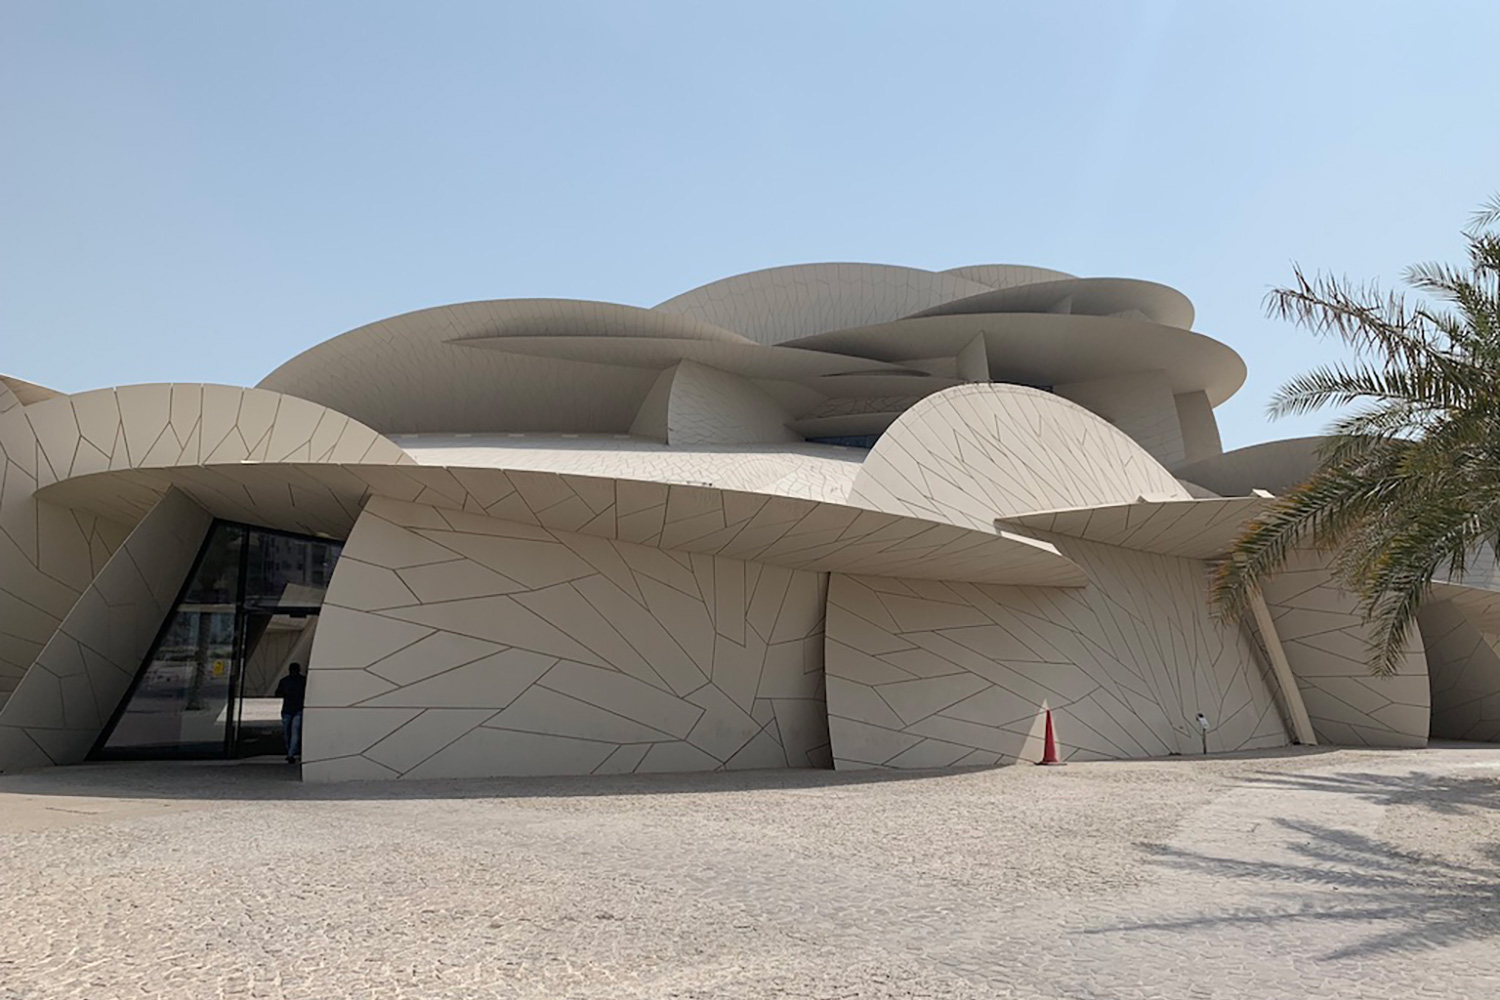 The National Museum of Qatar. WSDG was contracted to create a 3-D acoustic model of the space and make recommendations regarding appropriate speaker usage and placement. Façade 2.